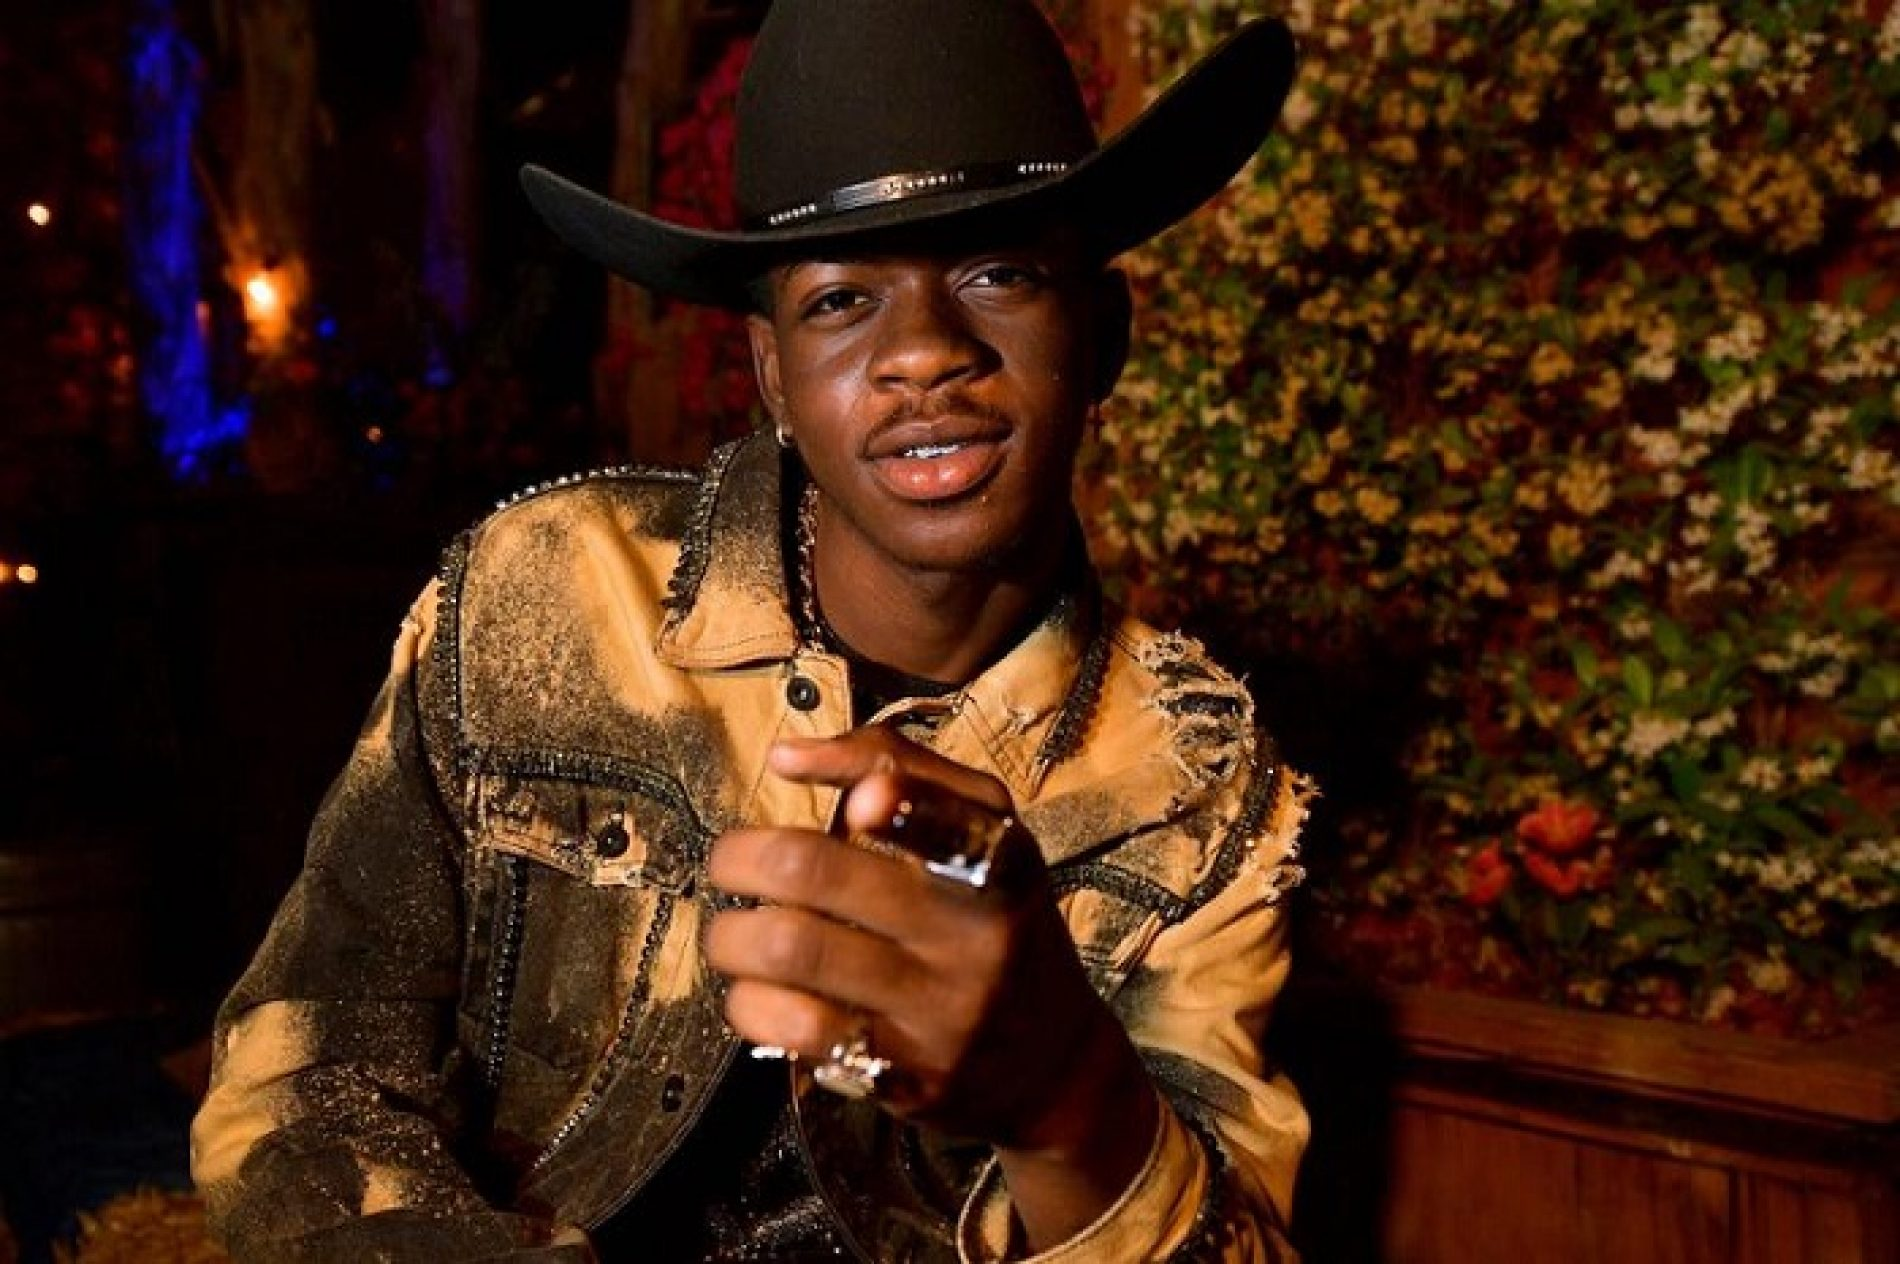 Lil Nas X Comes Out In Post That Marks The End Of Pride Month